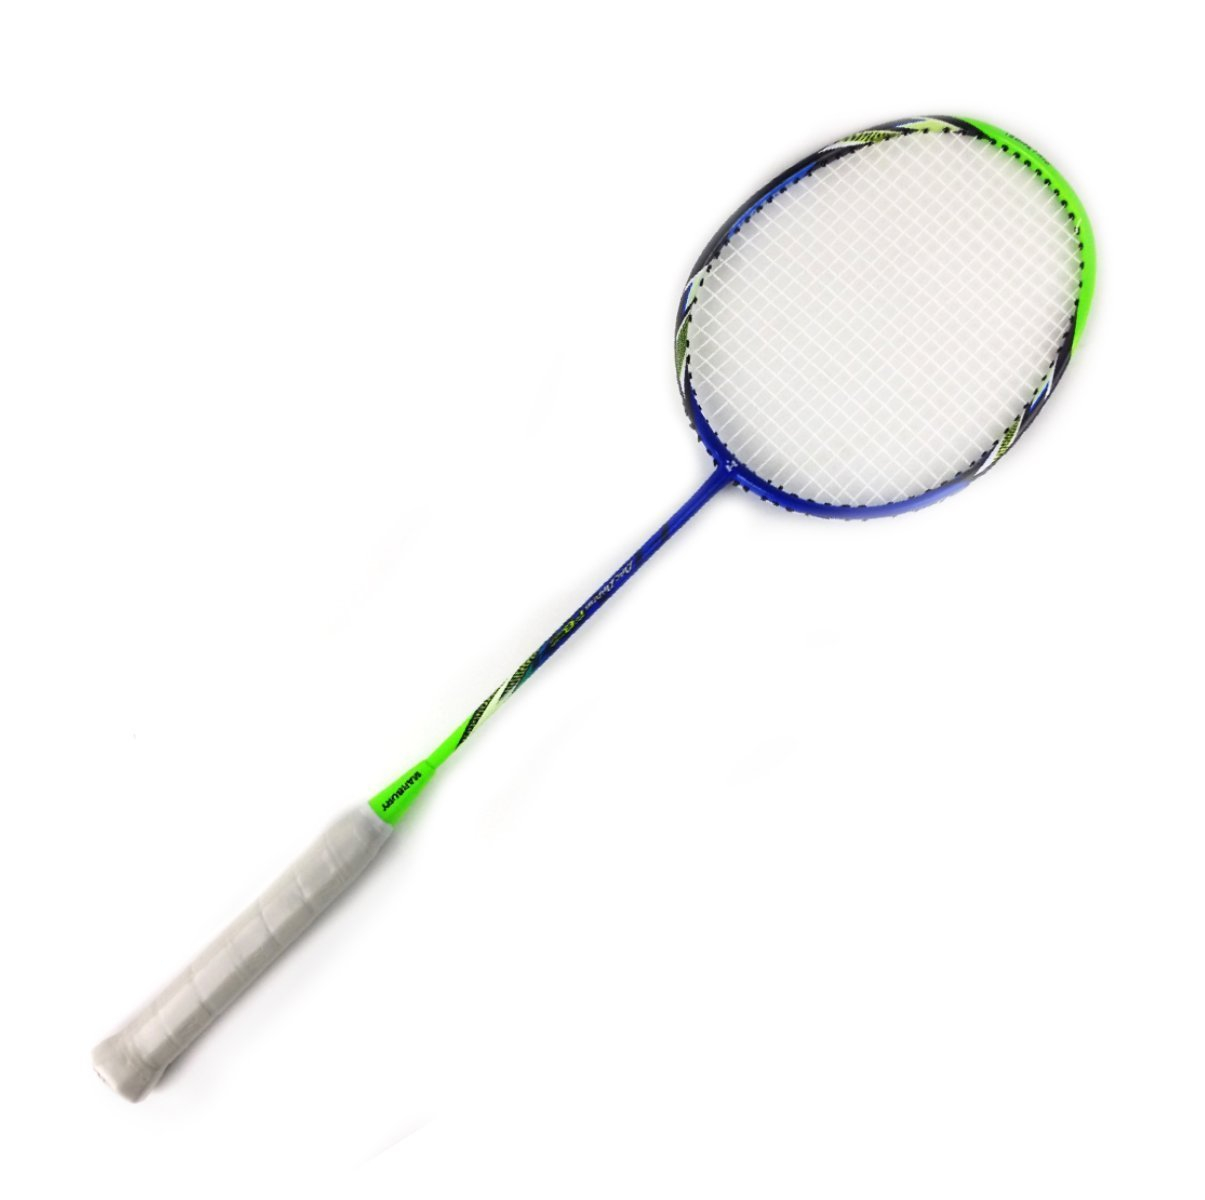 My Badminton Racket - 4pcs Glorious Performance with Lightweight Micro Carbon Fiber Racket -Super Tight String and Elastic Shaft - Ergonomic Design - Universal Size to All Age - 471.03